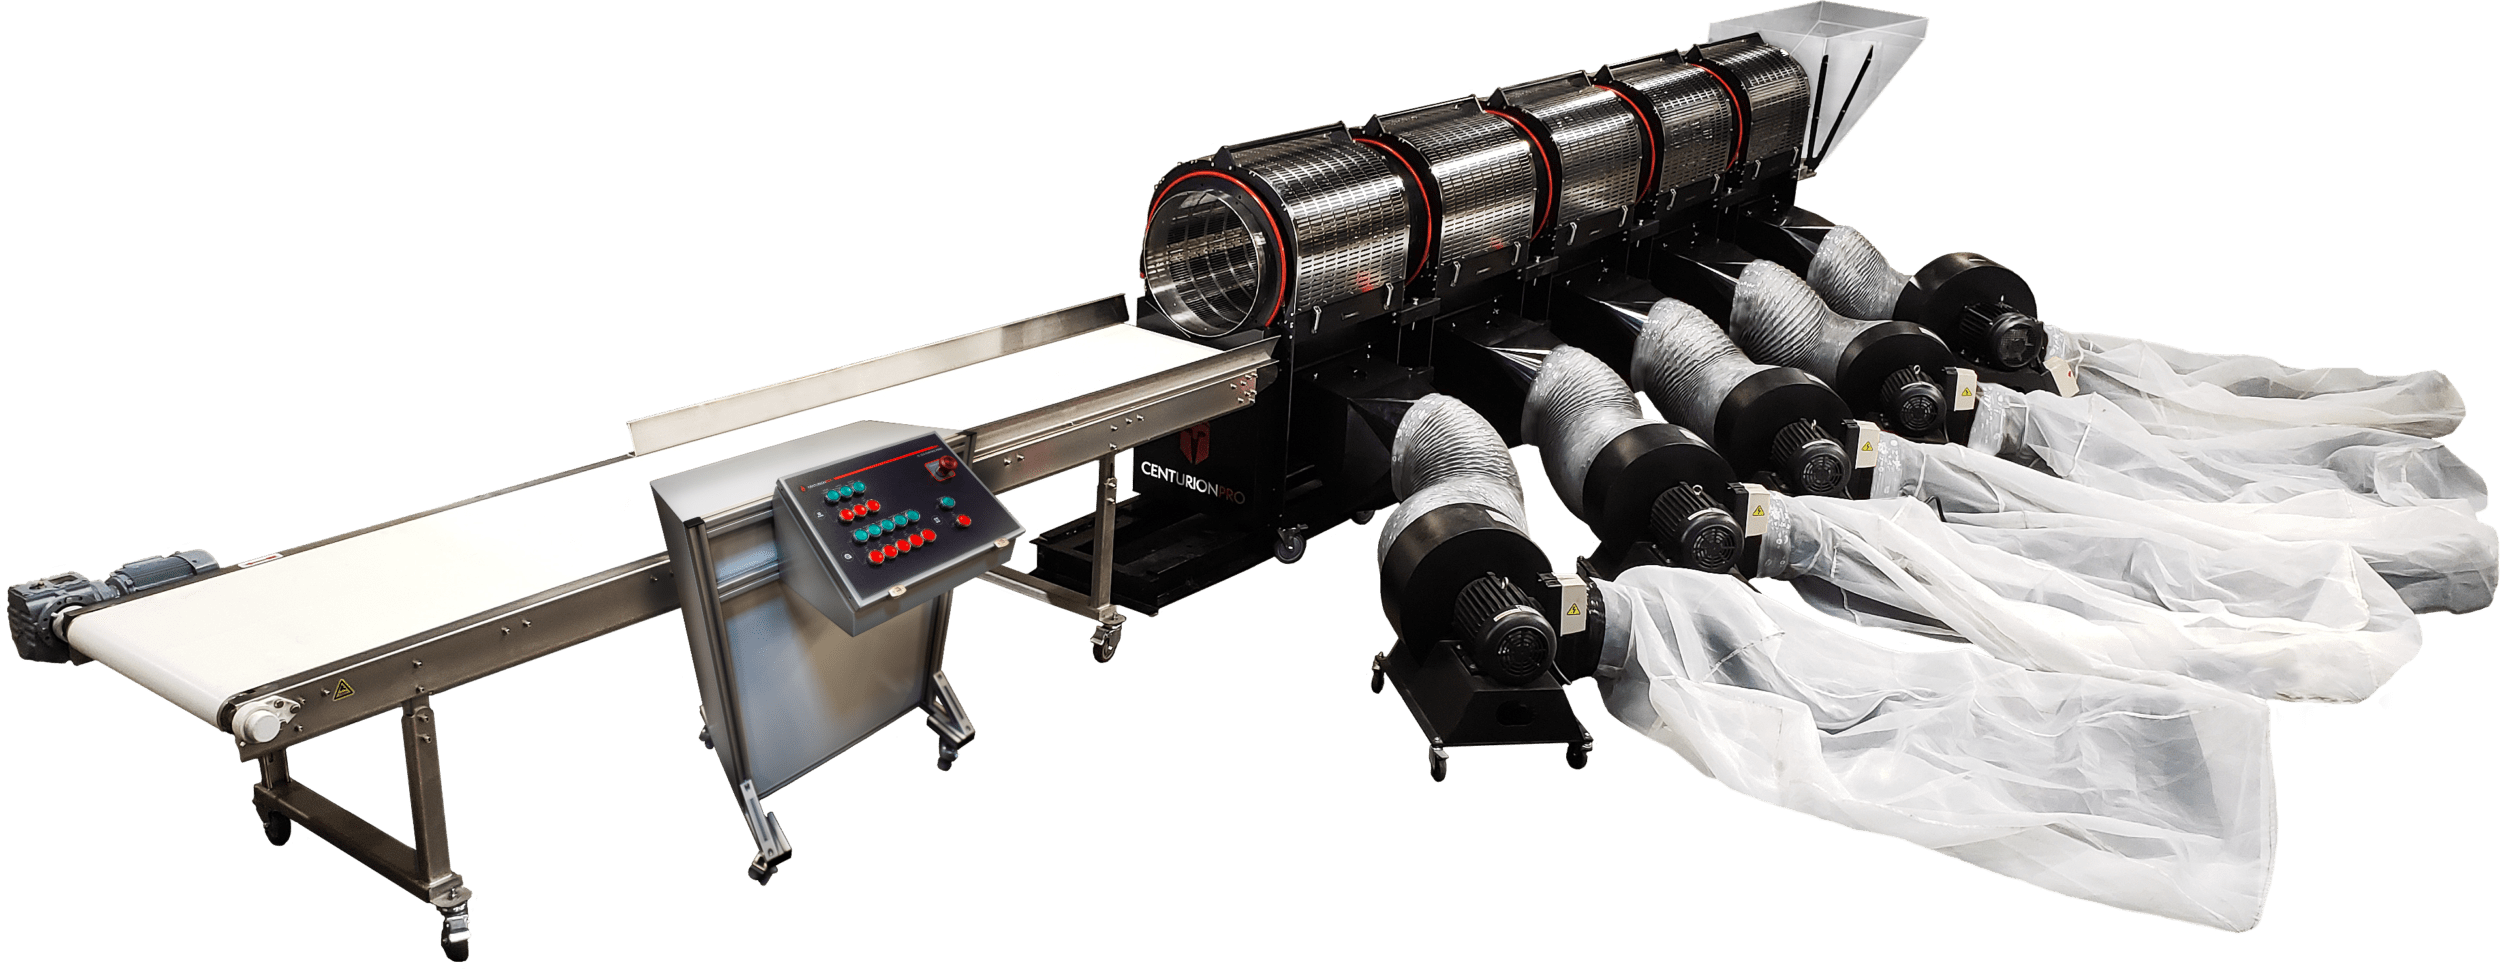 XL_5_Trimmer_Blower_Infeed_Conveyor_Web